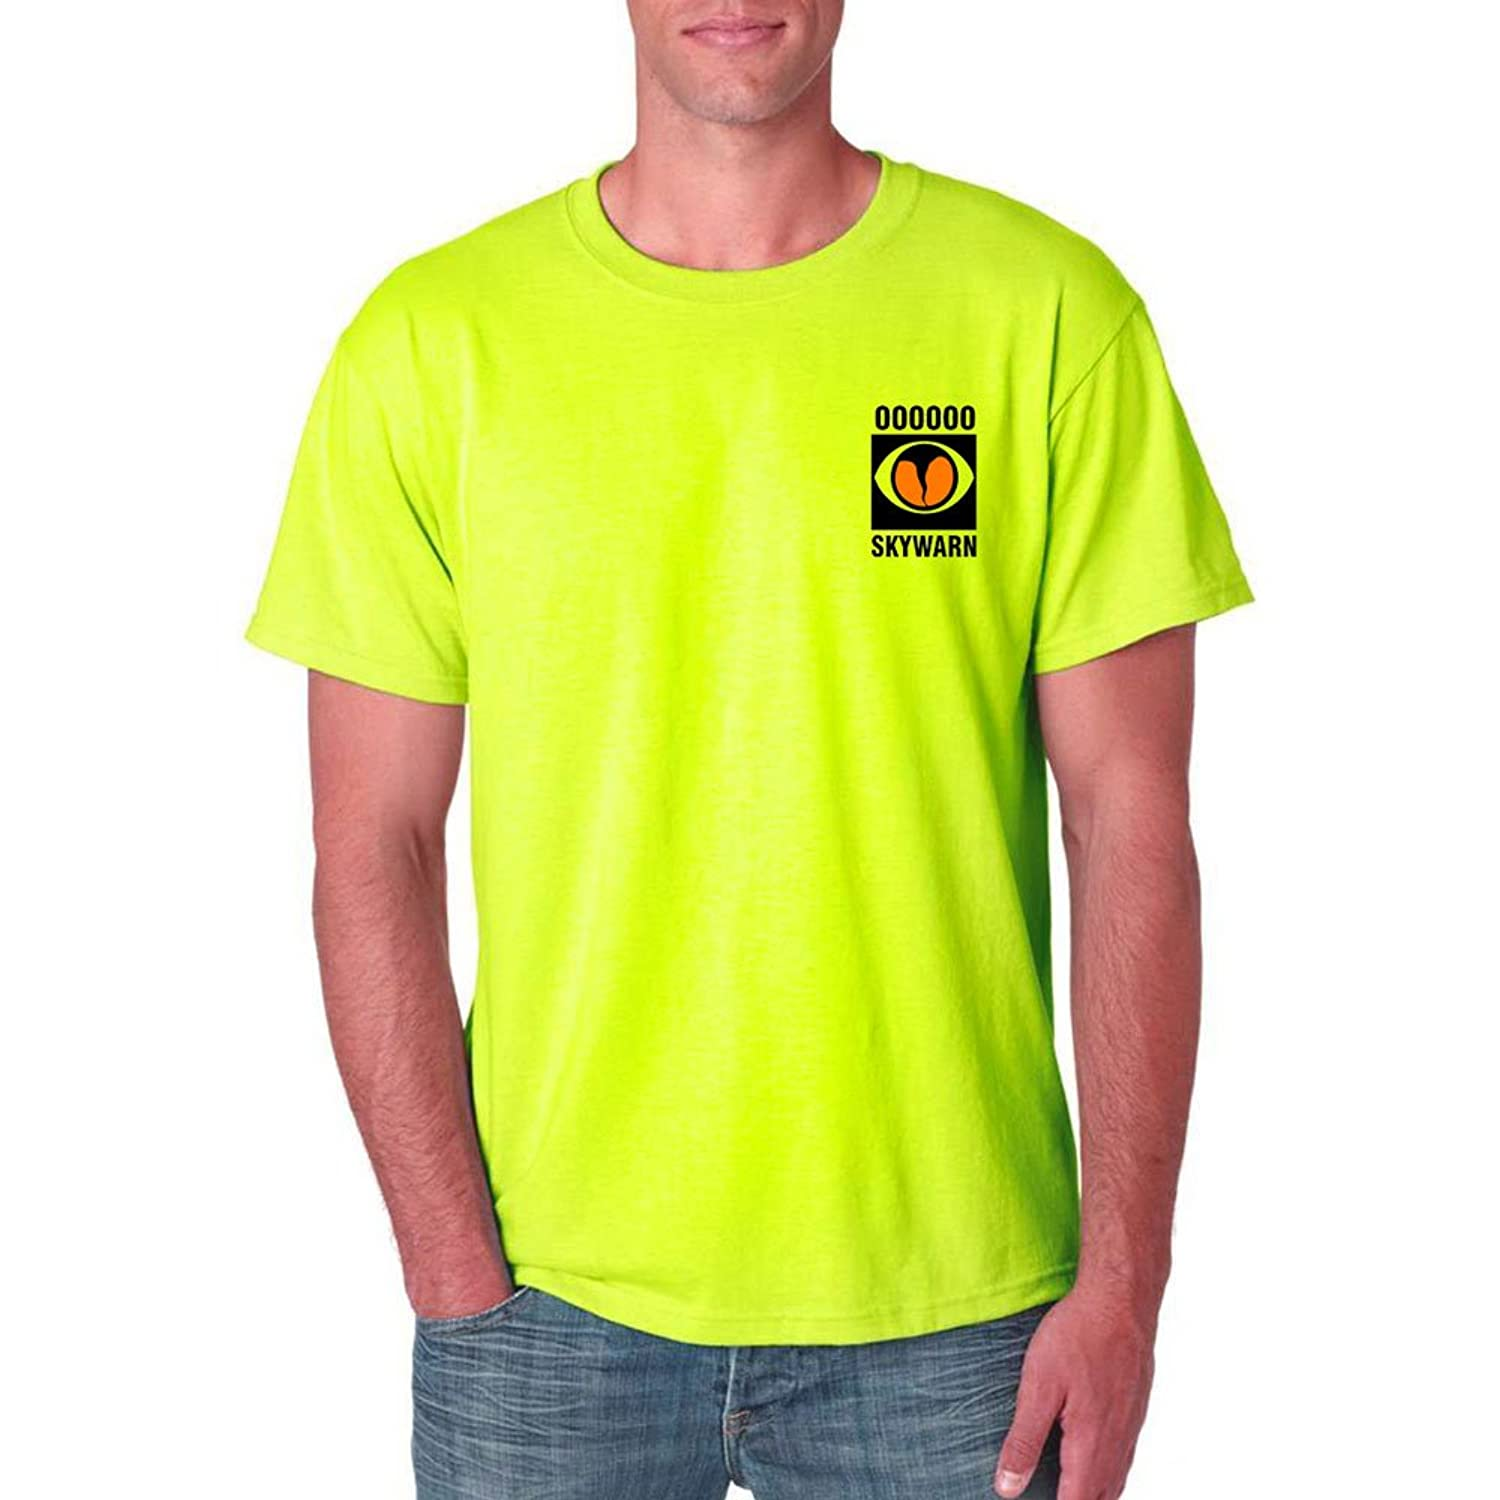 Skywarn - Official Storm Spotter T-Shirt with custom Call Sign on front